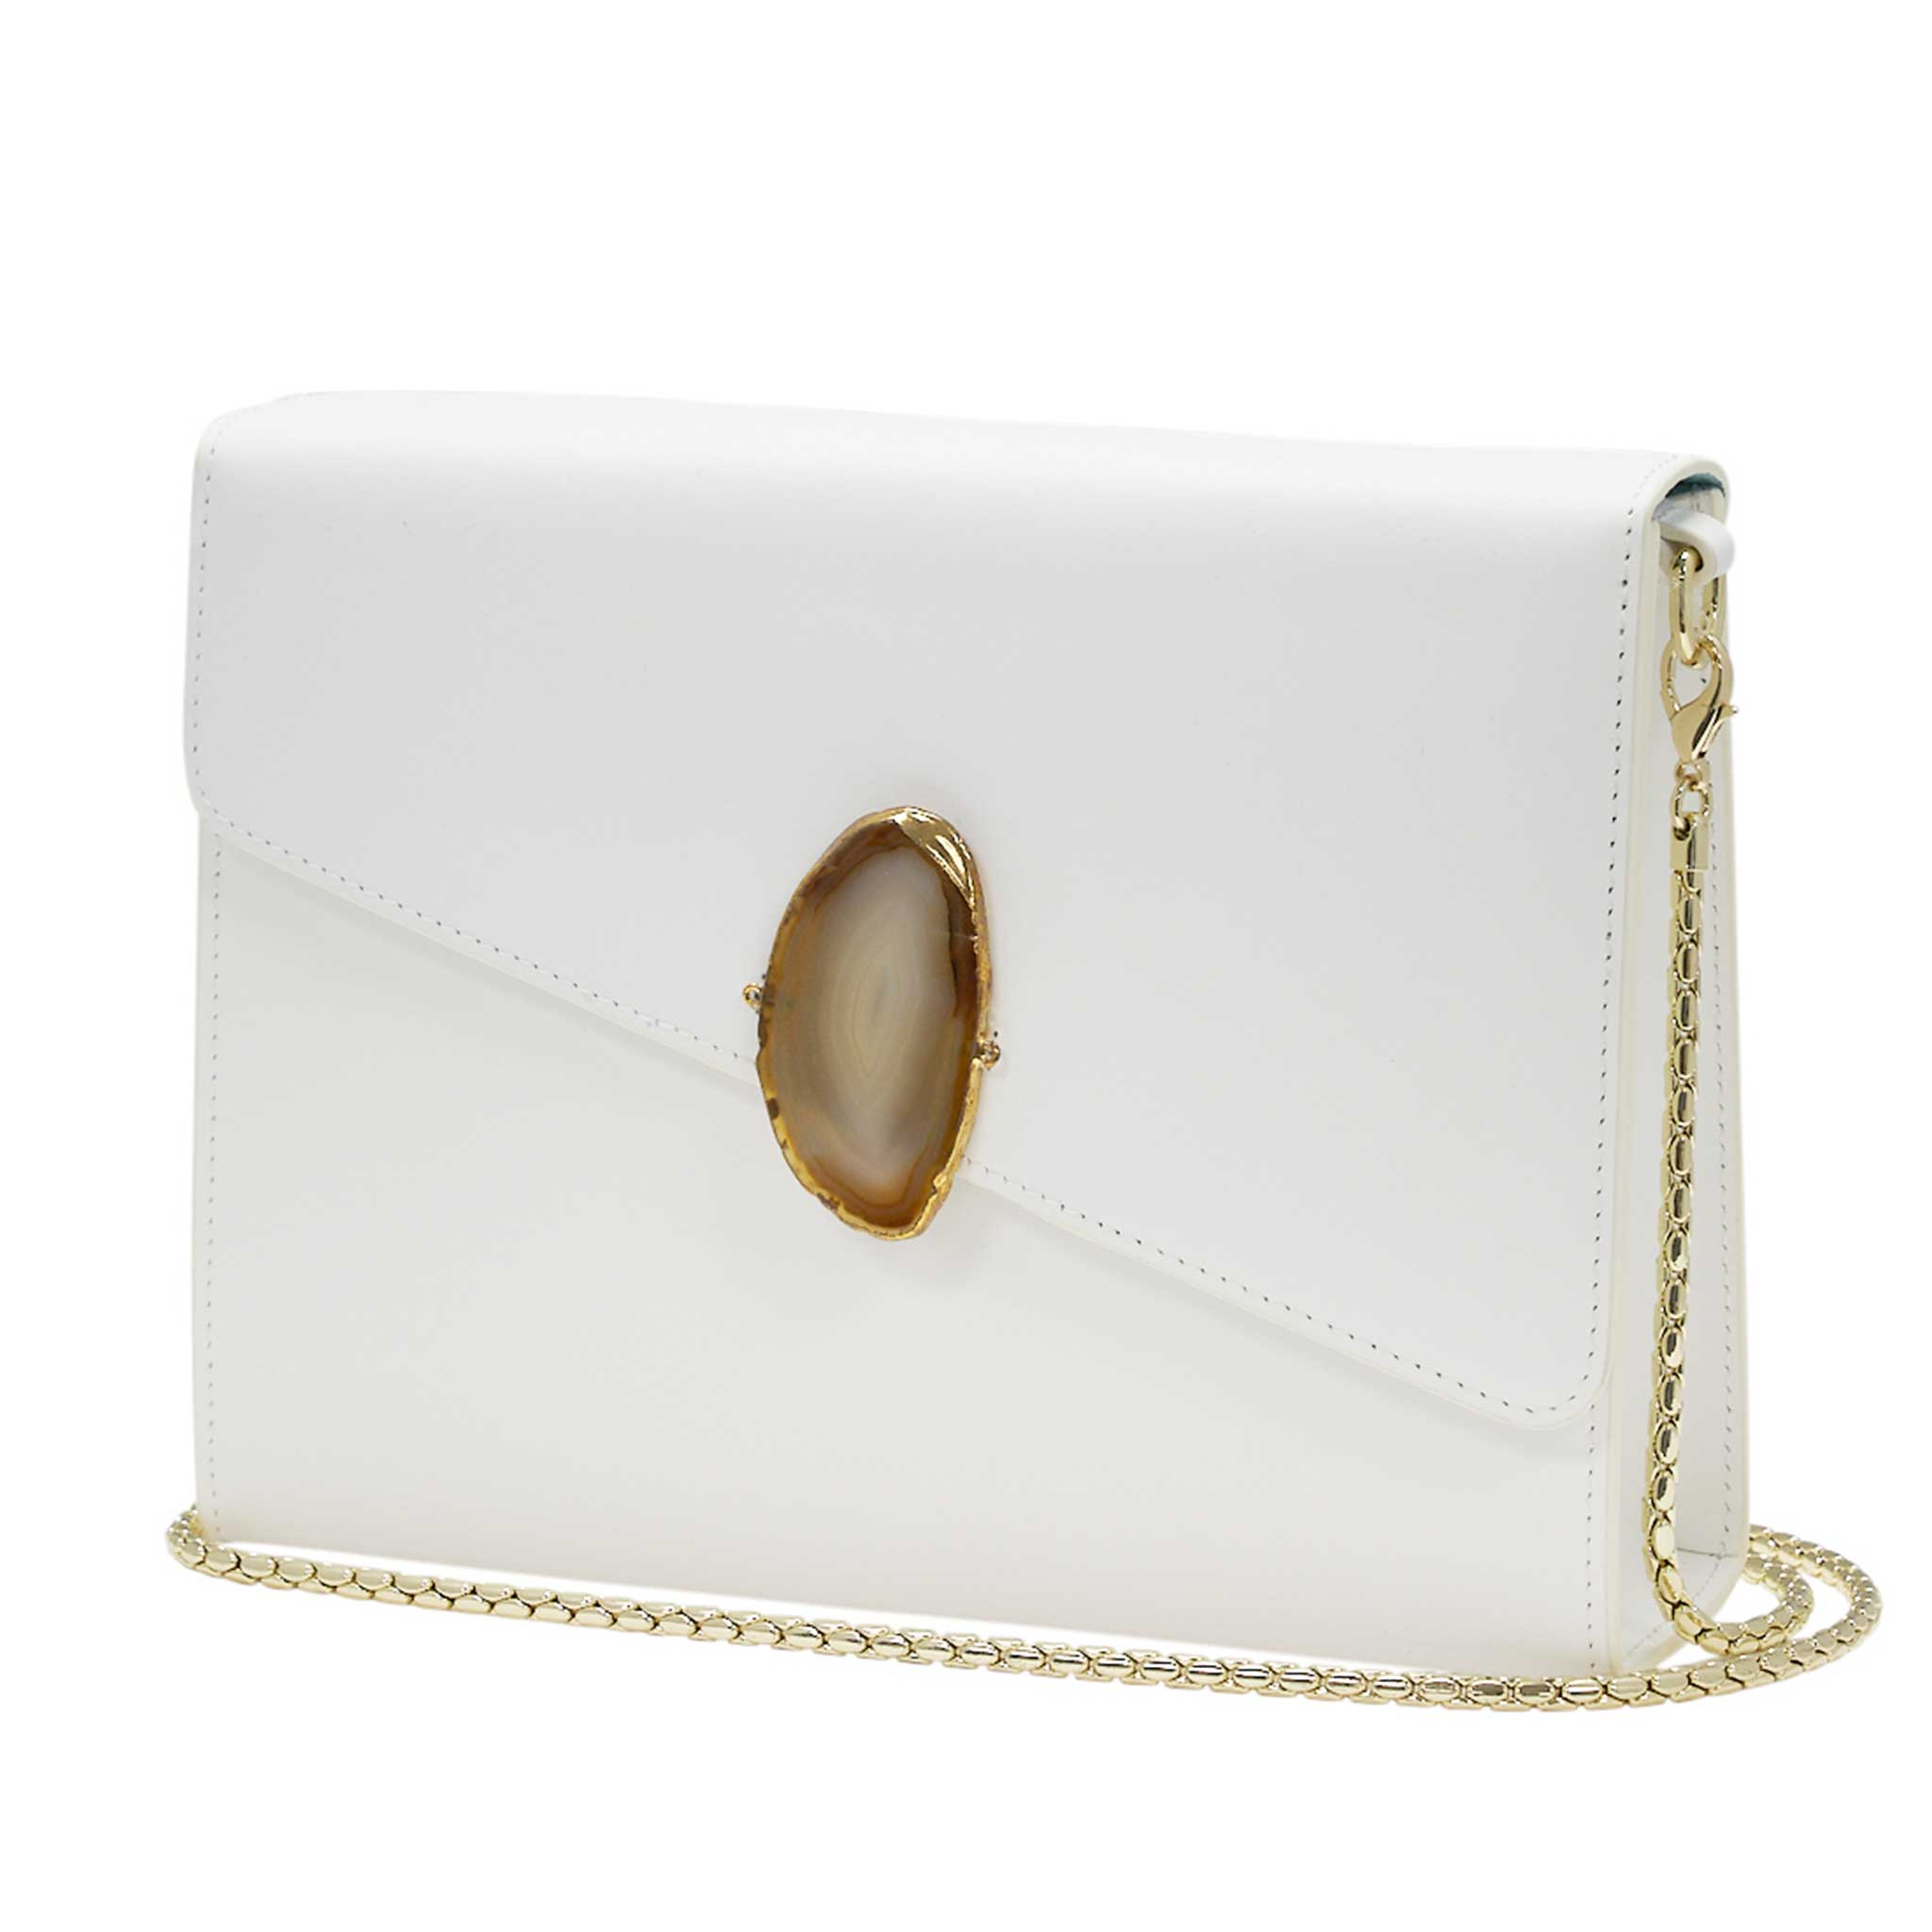 LOVED BAG - MOONSTONE WHITE LEATHER WITH BROWN AGATE - 1.03.001.011